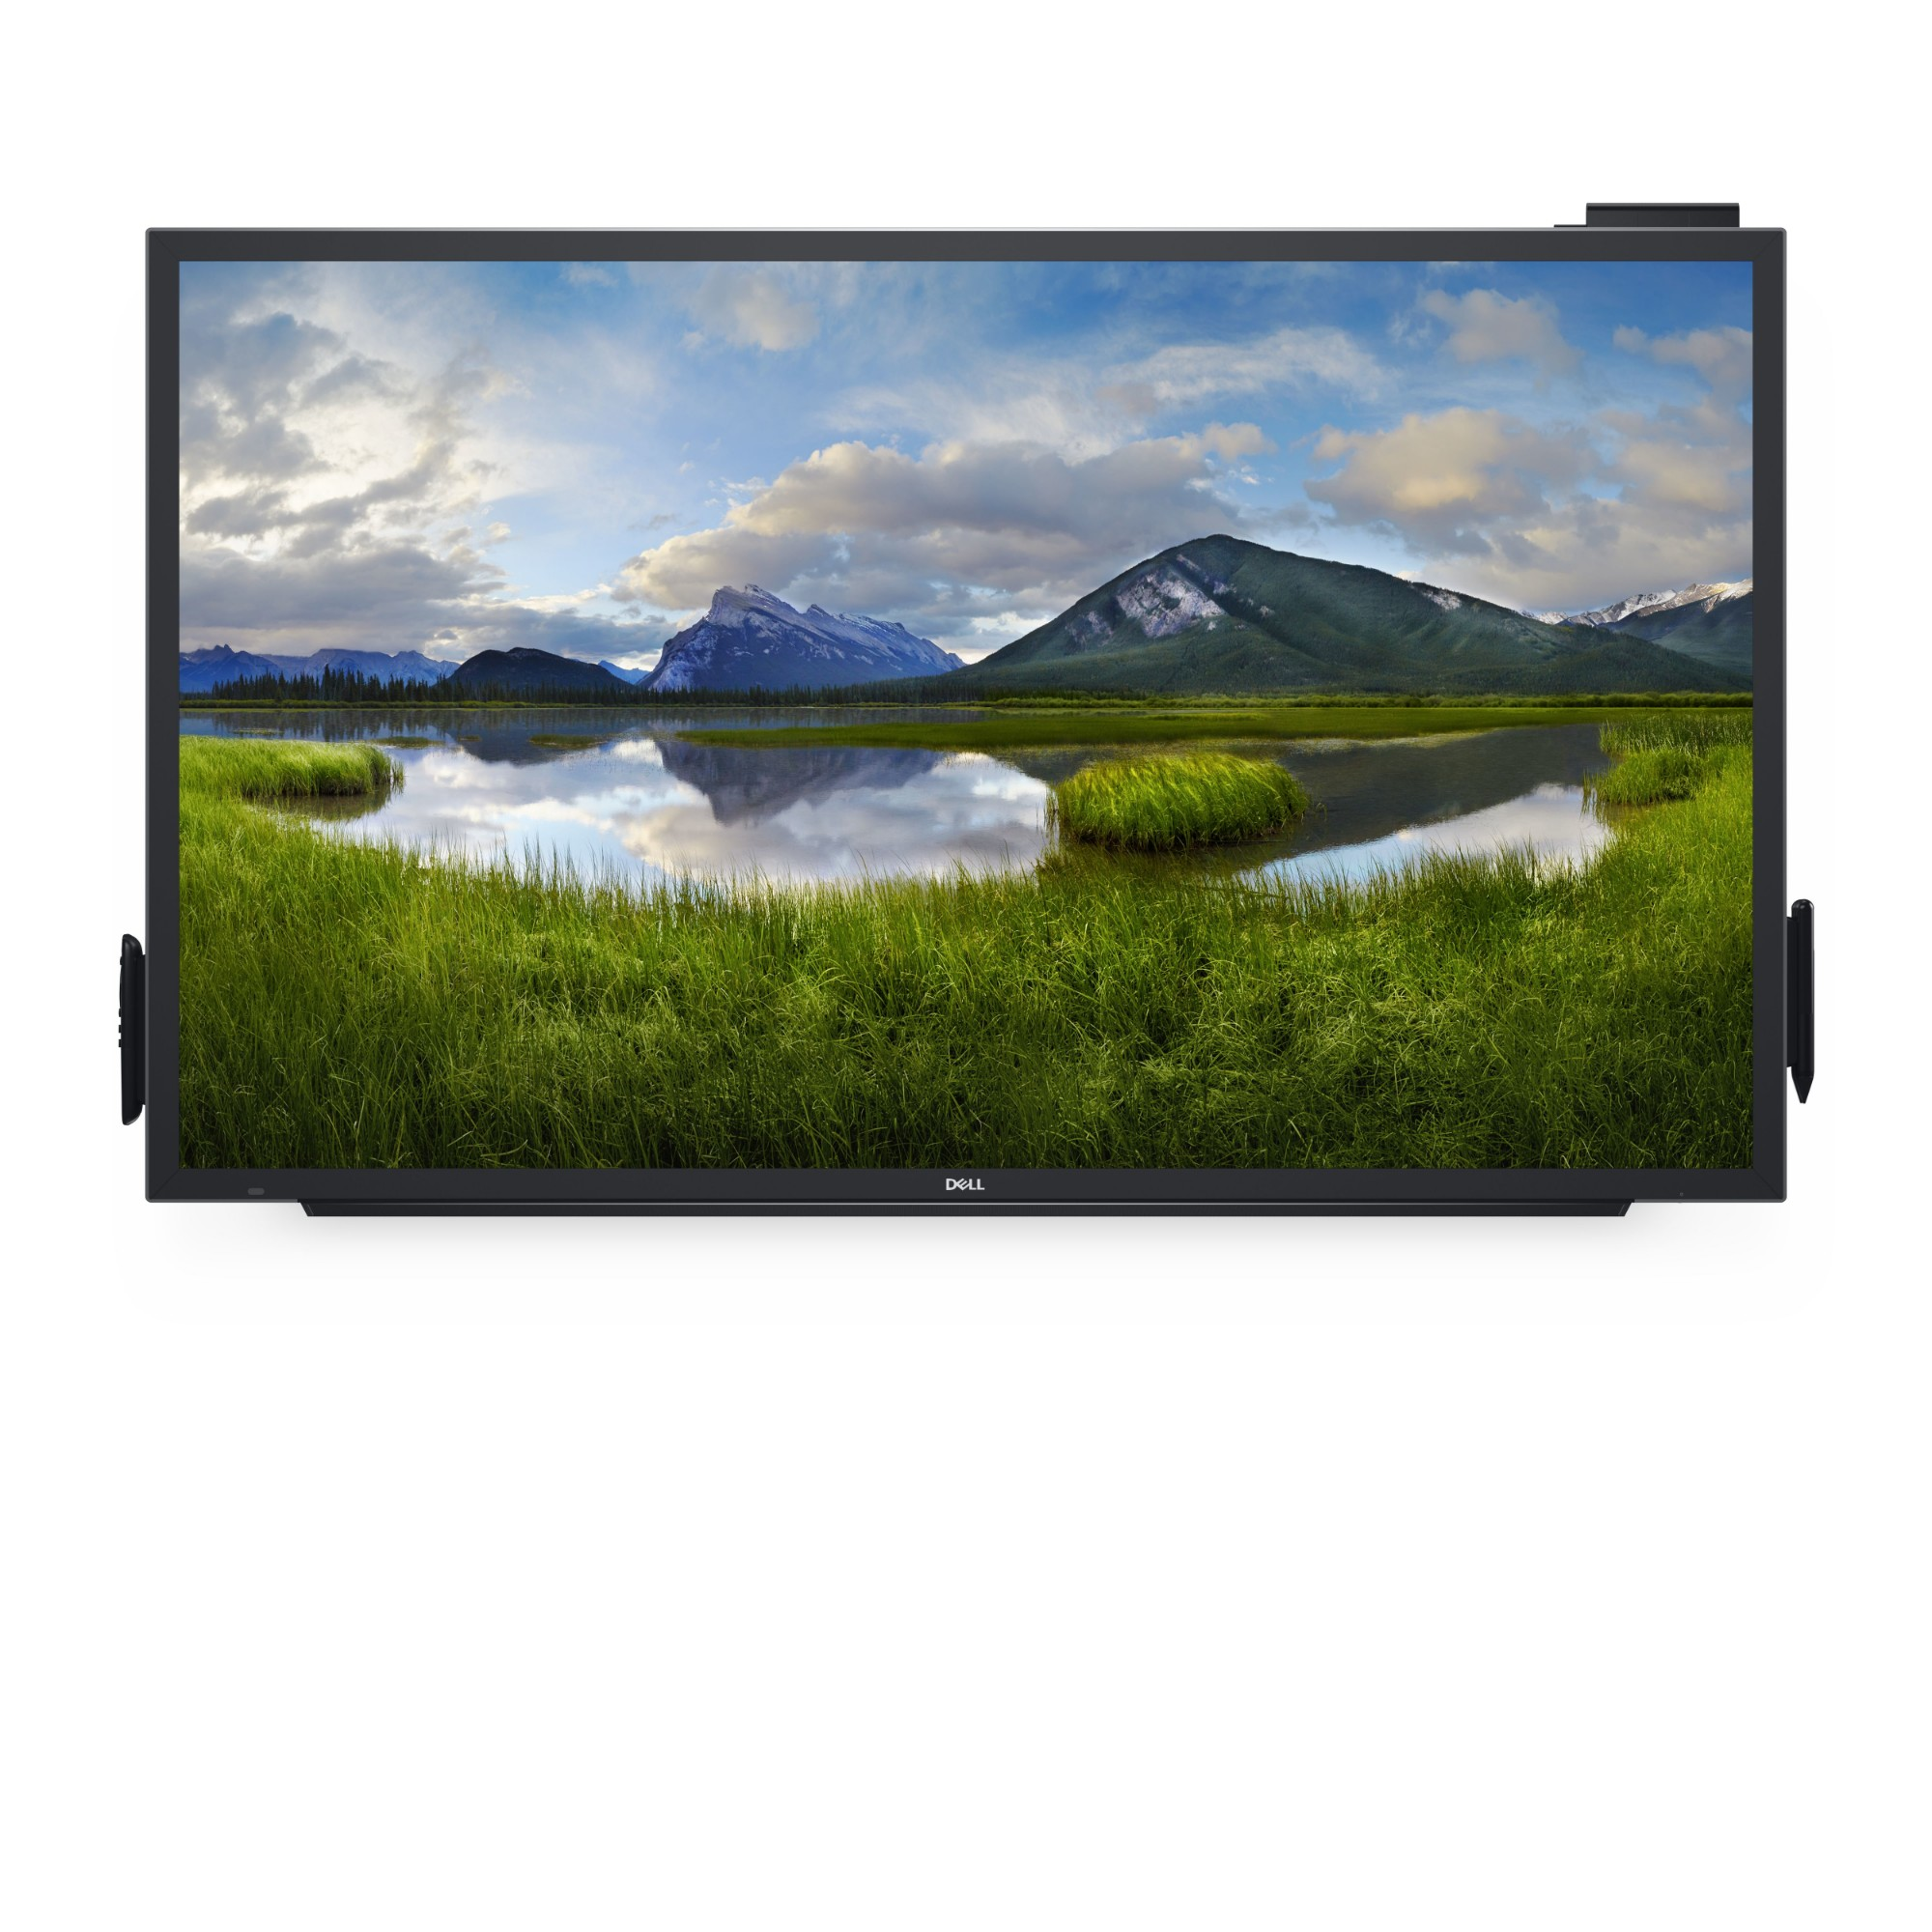 Touch Monitor - C5518qt - 55in - 3840x2160 (uhd) - Black